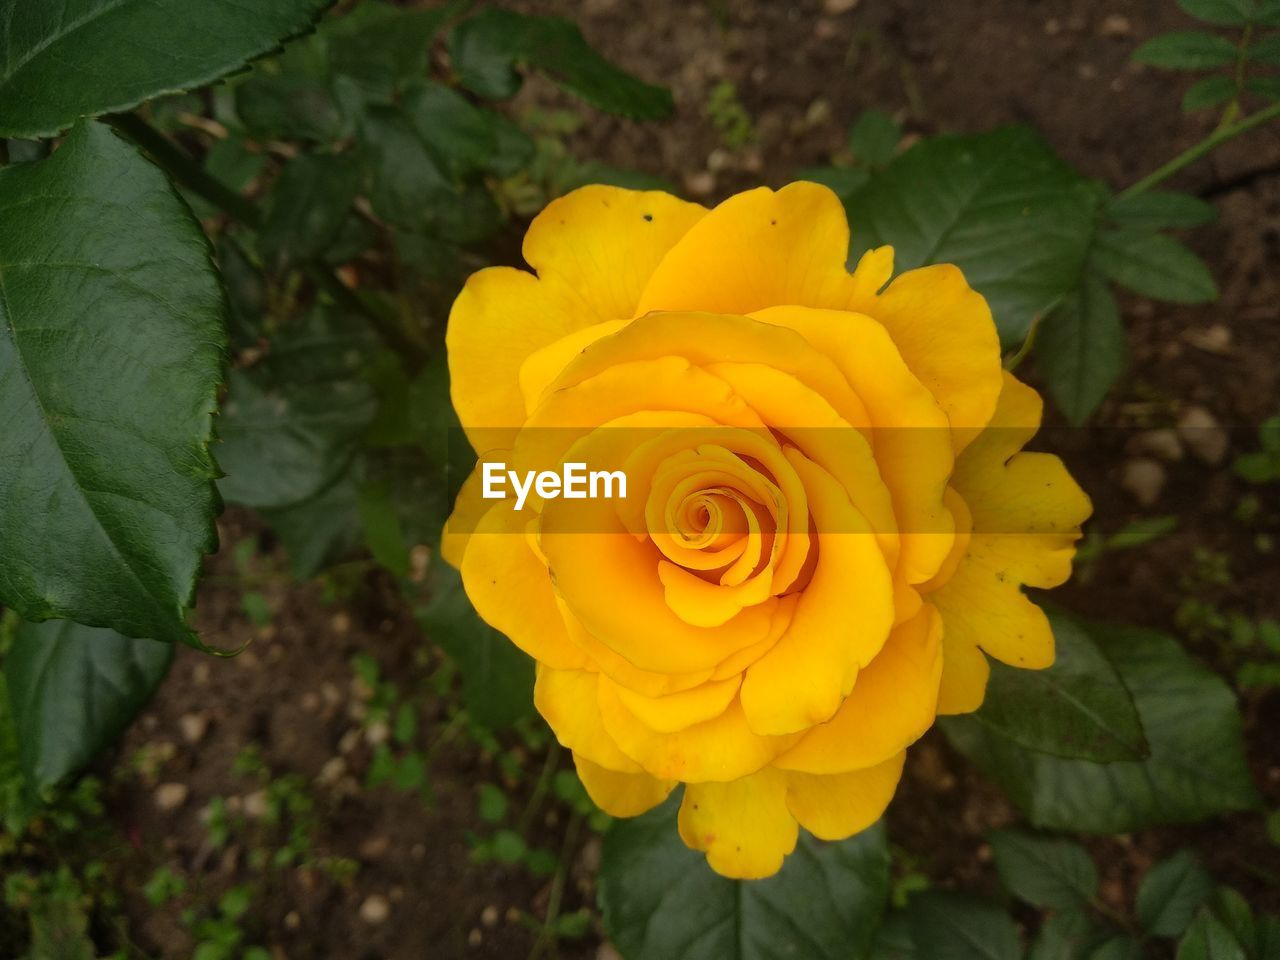 flower, flowering plant, plant, beauty in nature, vulnerability, fragility, flower head, inflorescence, petal, freshness, close-up, growth, yellow, rose, nature, plant part, leaf, rose - flower, day, high angle view, no people, outdoors